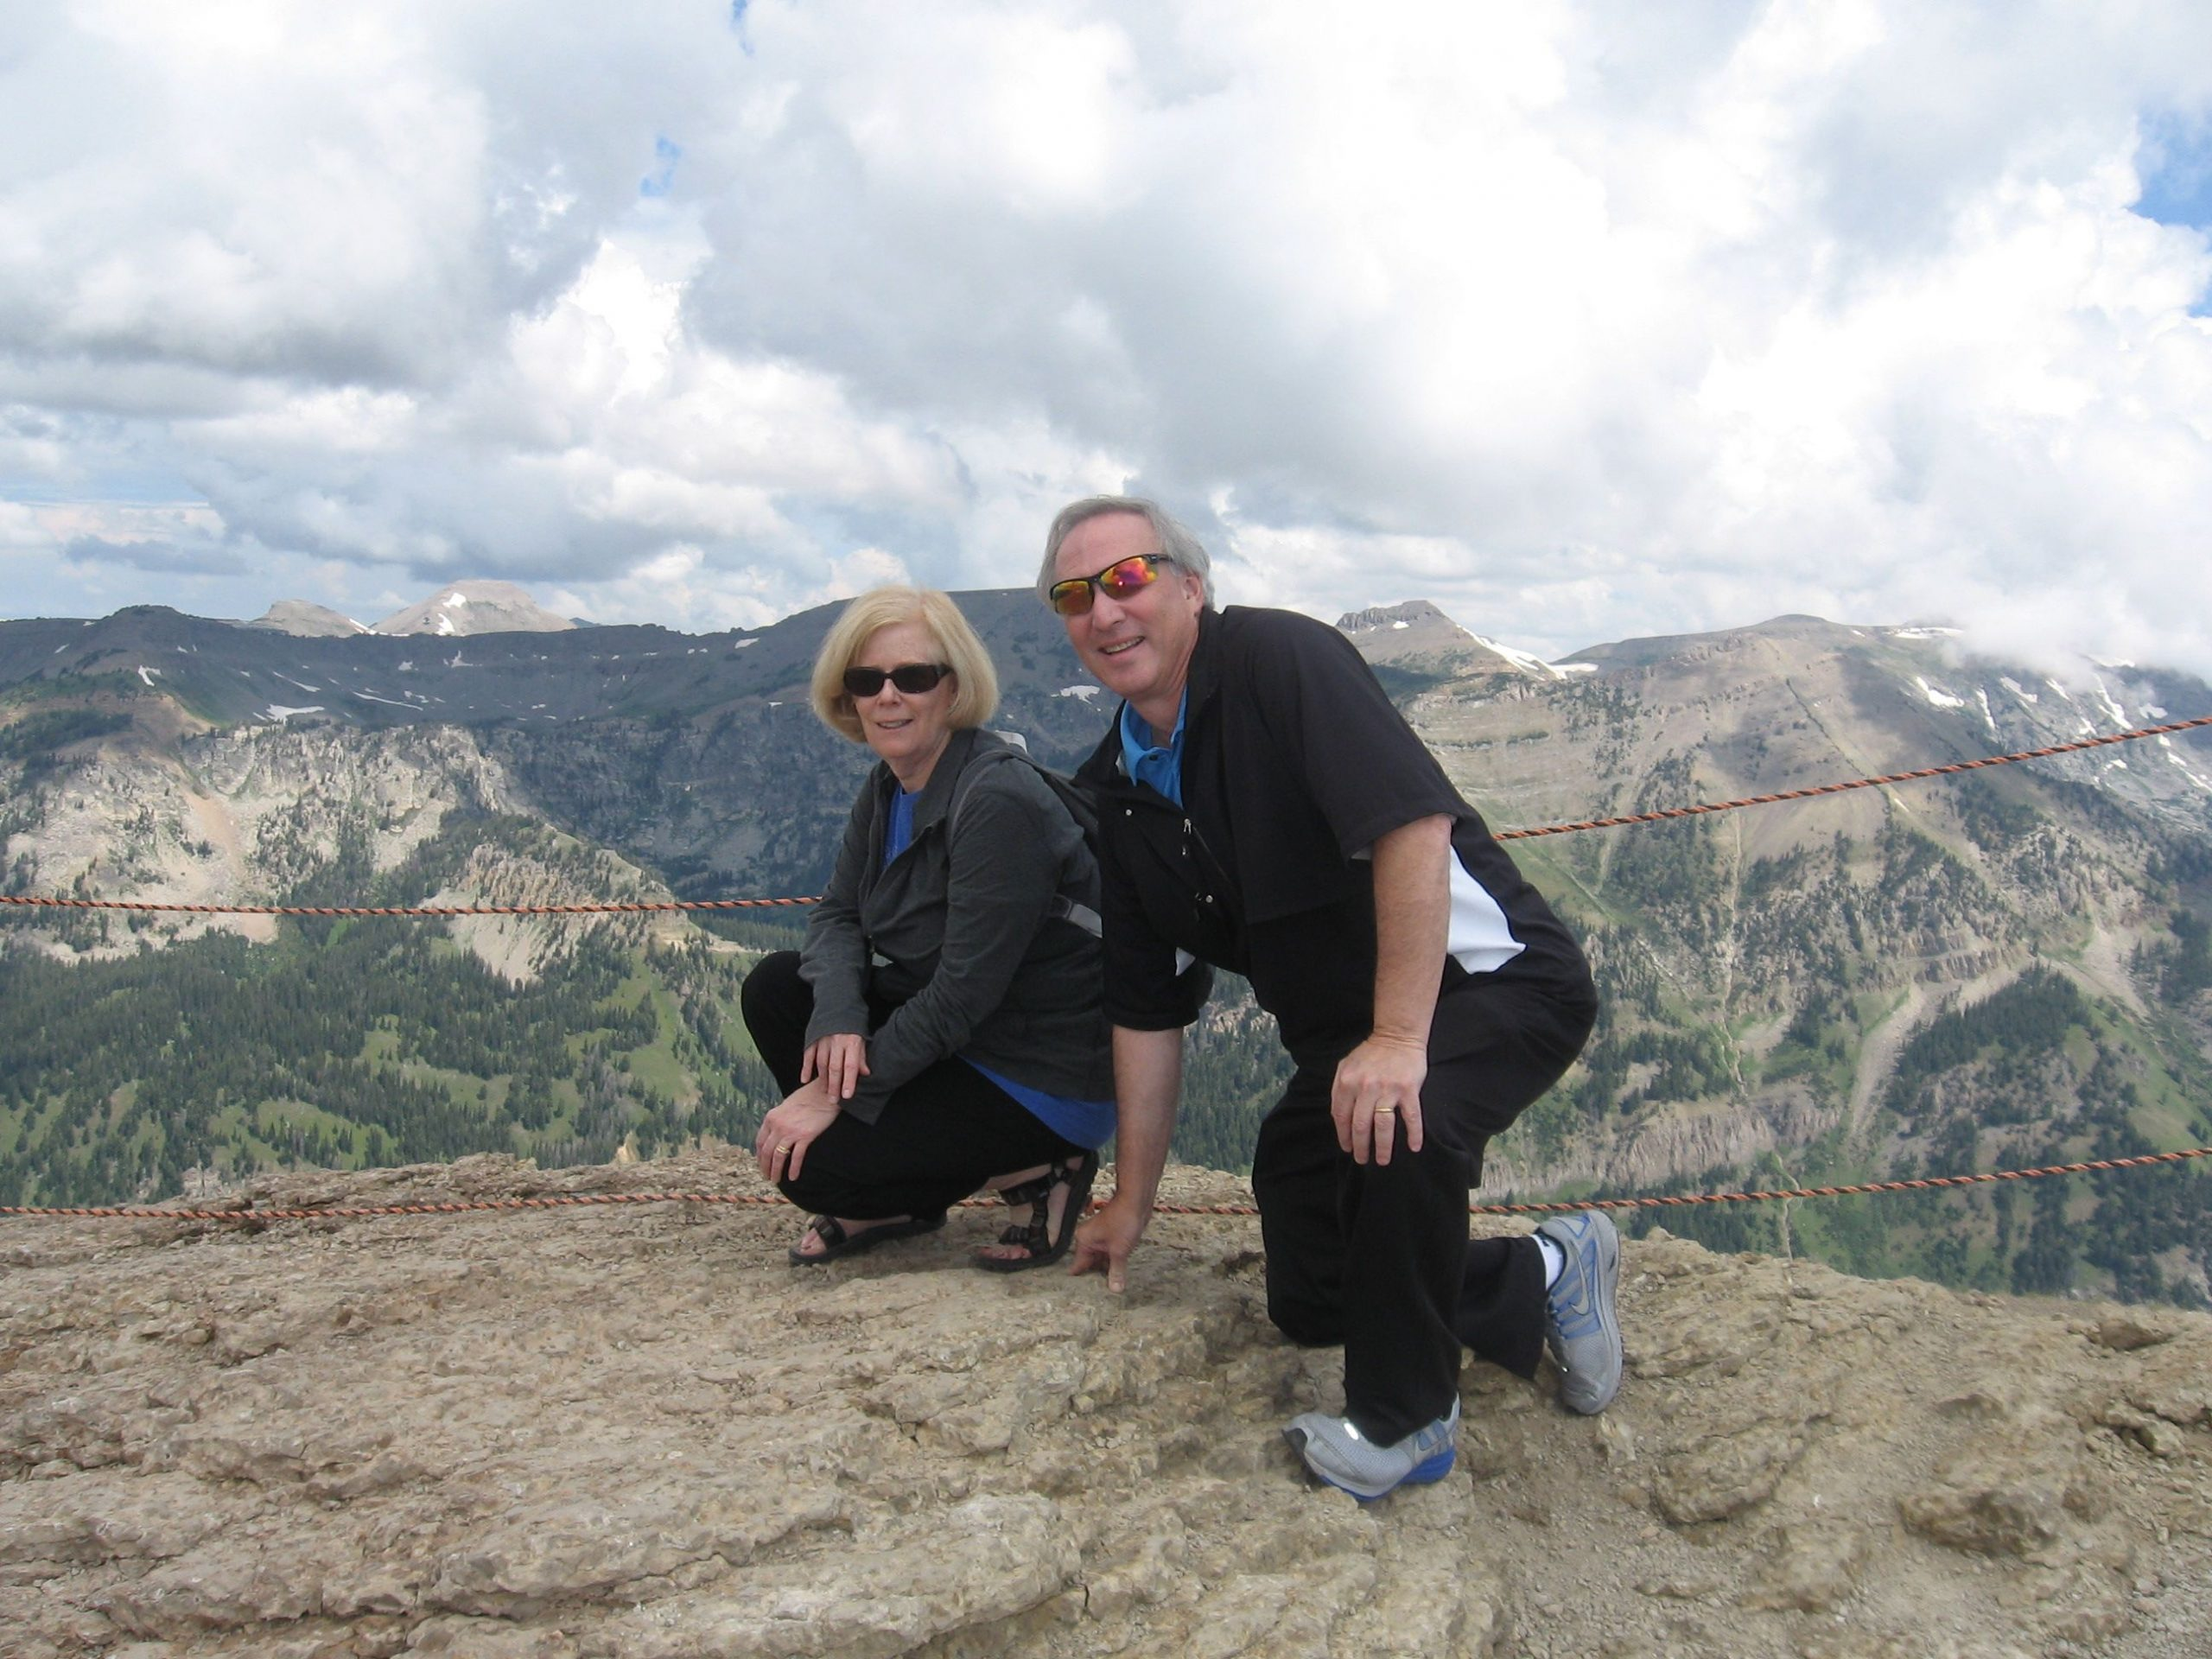 Ed and Jeanne at The Grand Tetons